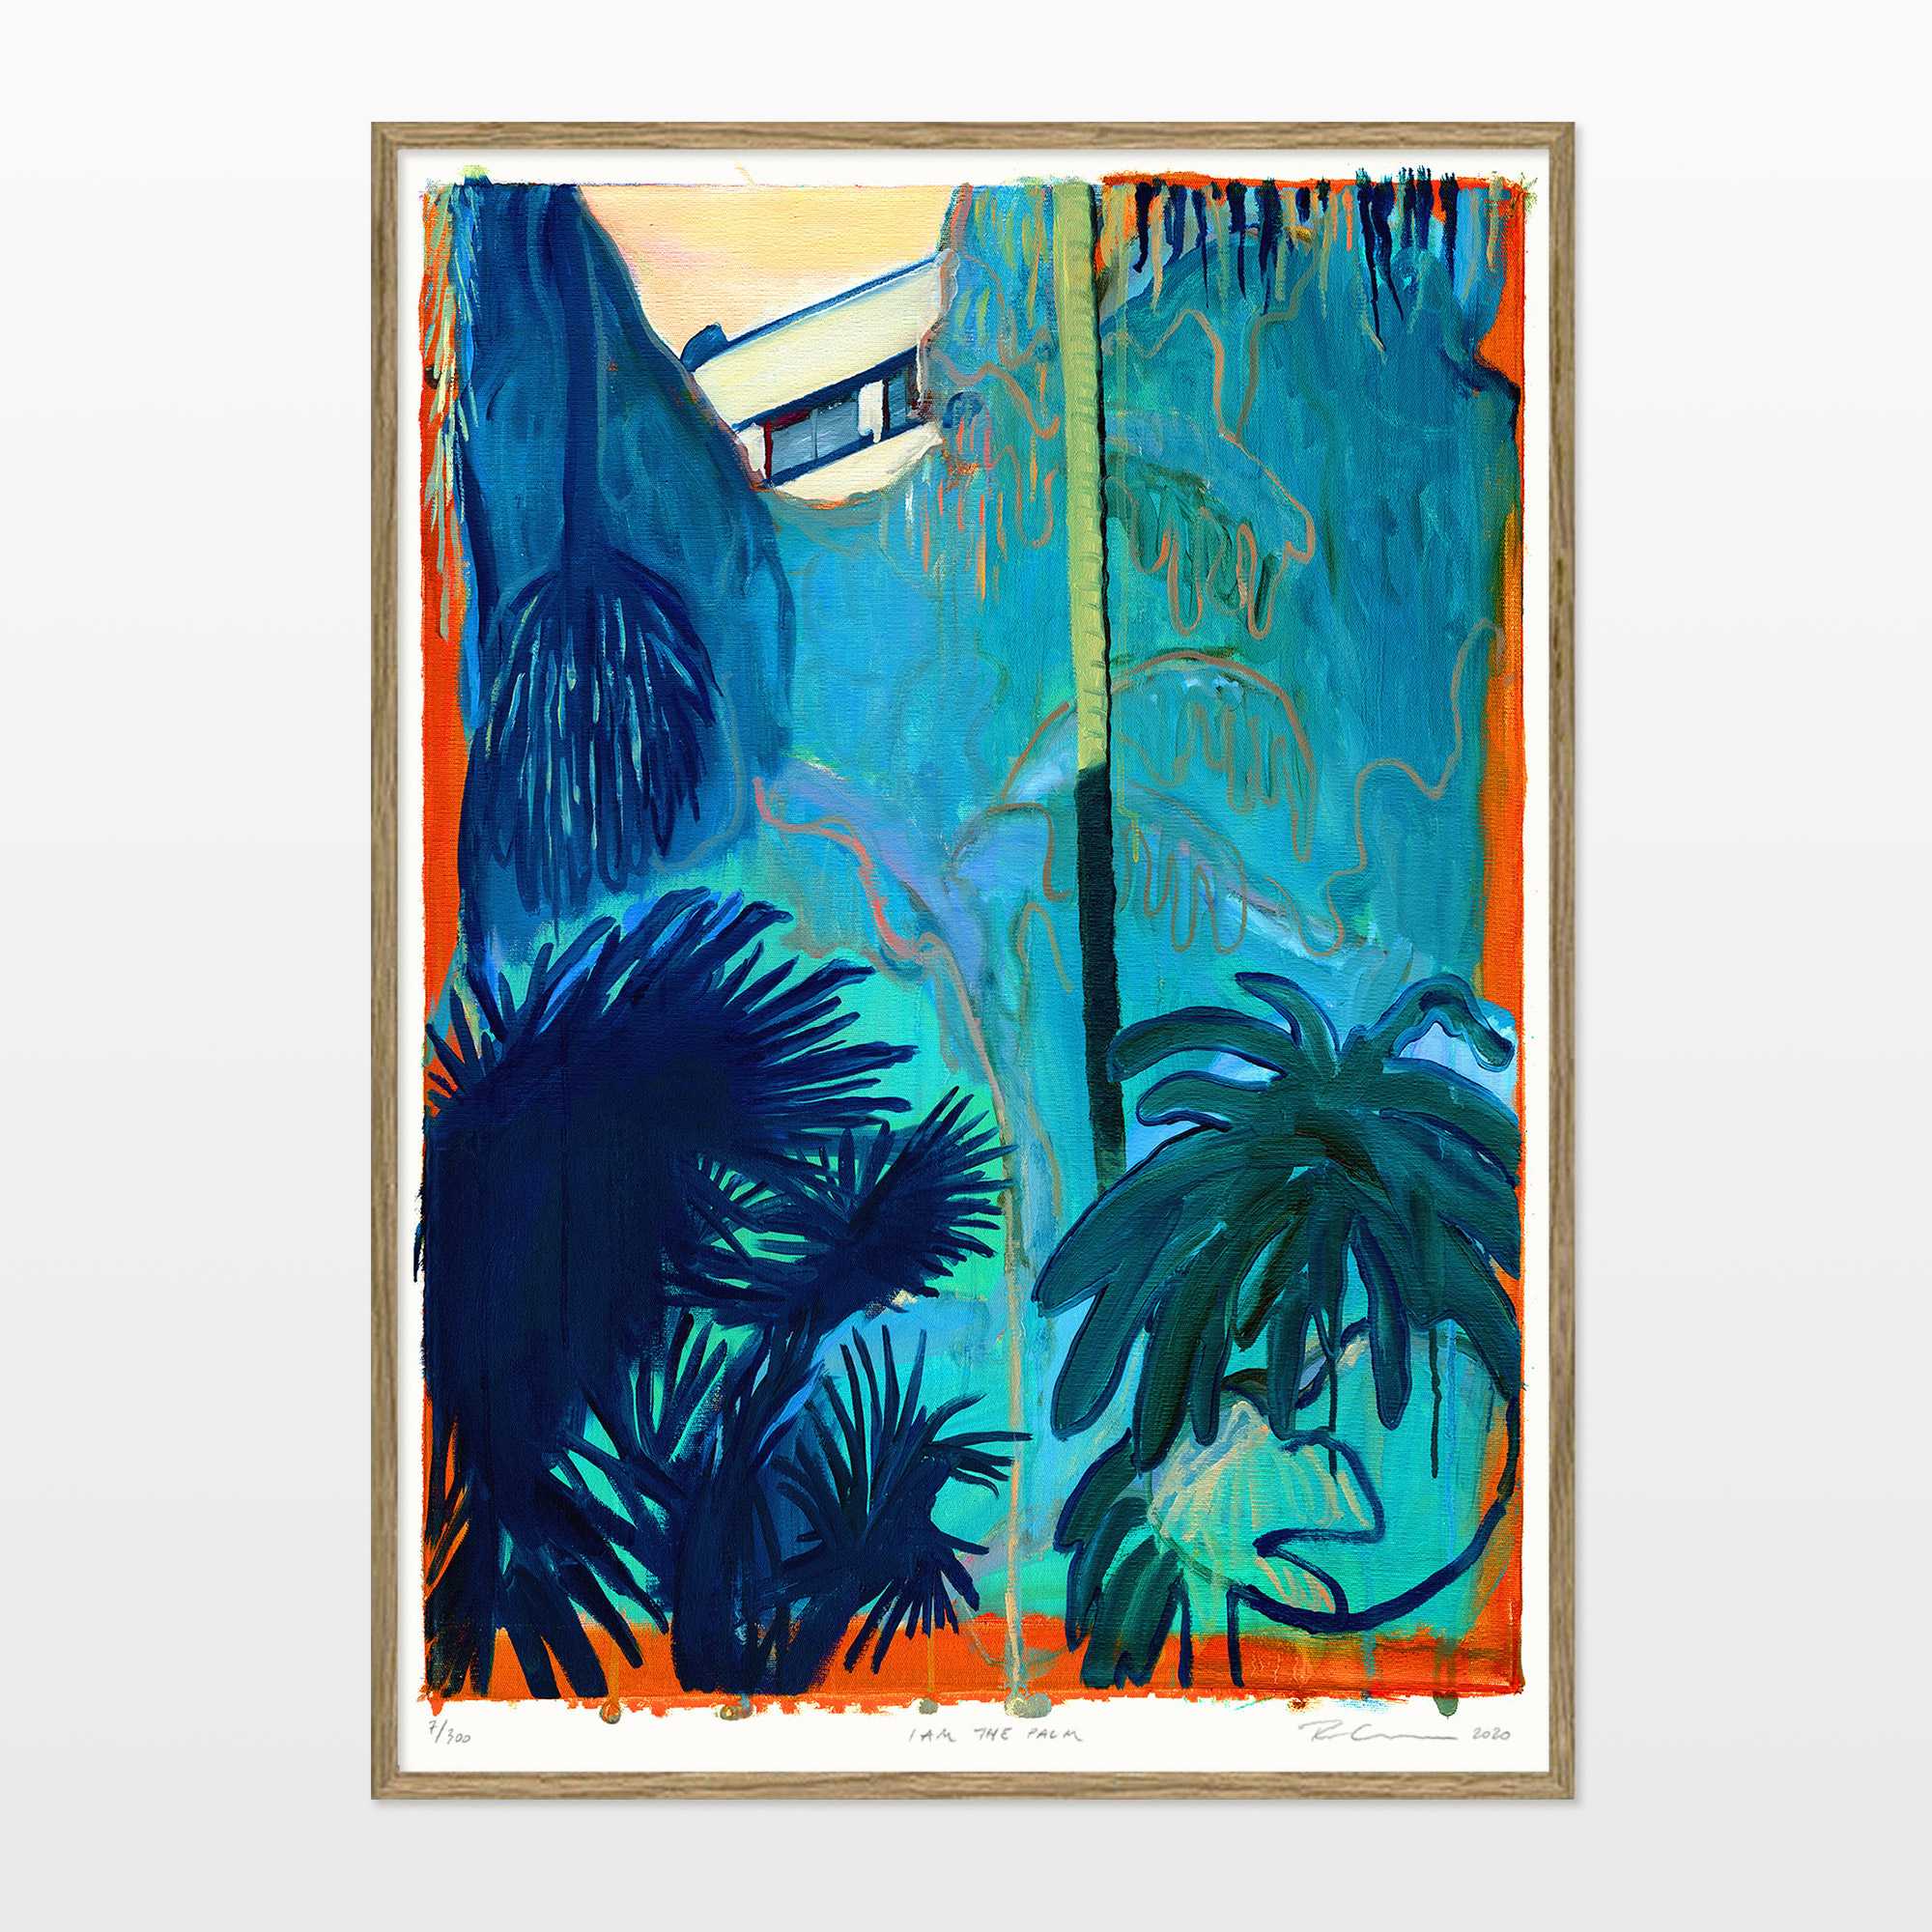 posters-prints, giclee-print, aesthetic, colorful, figurative, illustrative, landscape, botany, nature, blue, orange, turquoise, ink, paper, beautiful, contemporary-art, copenhagen, danish, decorative, design, forest, interior, interior-design, modern, modern-art, nordic, plants, posters, scandinavien, Buy original high quality art. Paintings, drawings, limited edition prints & posters by talented artists.